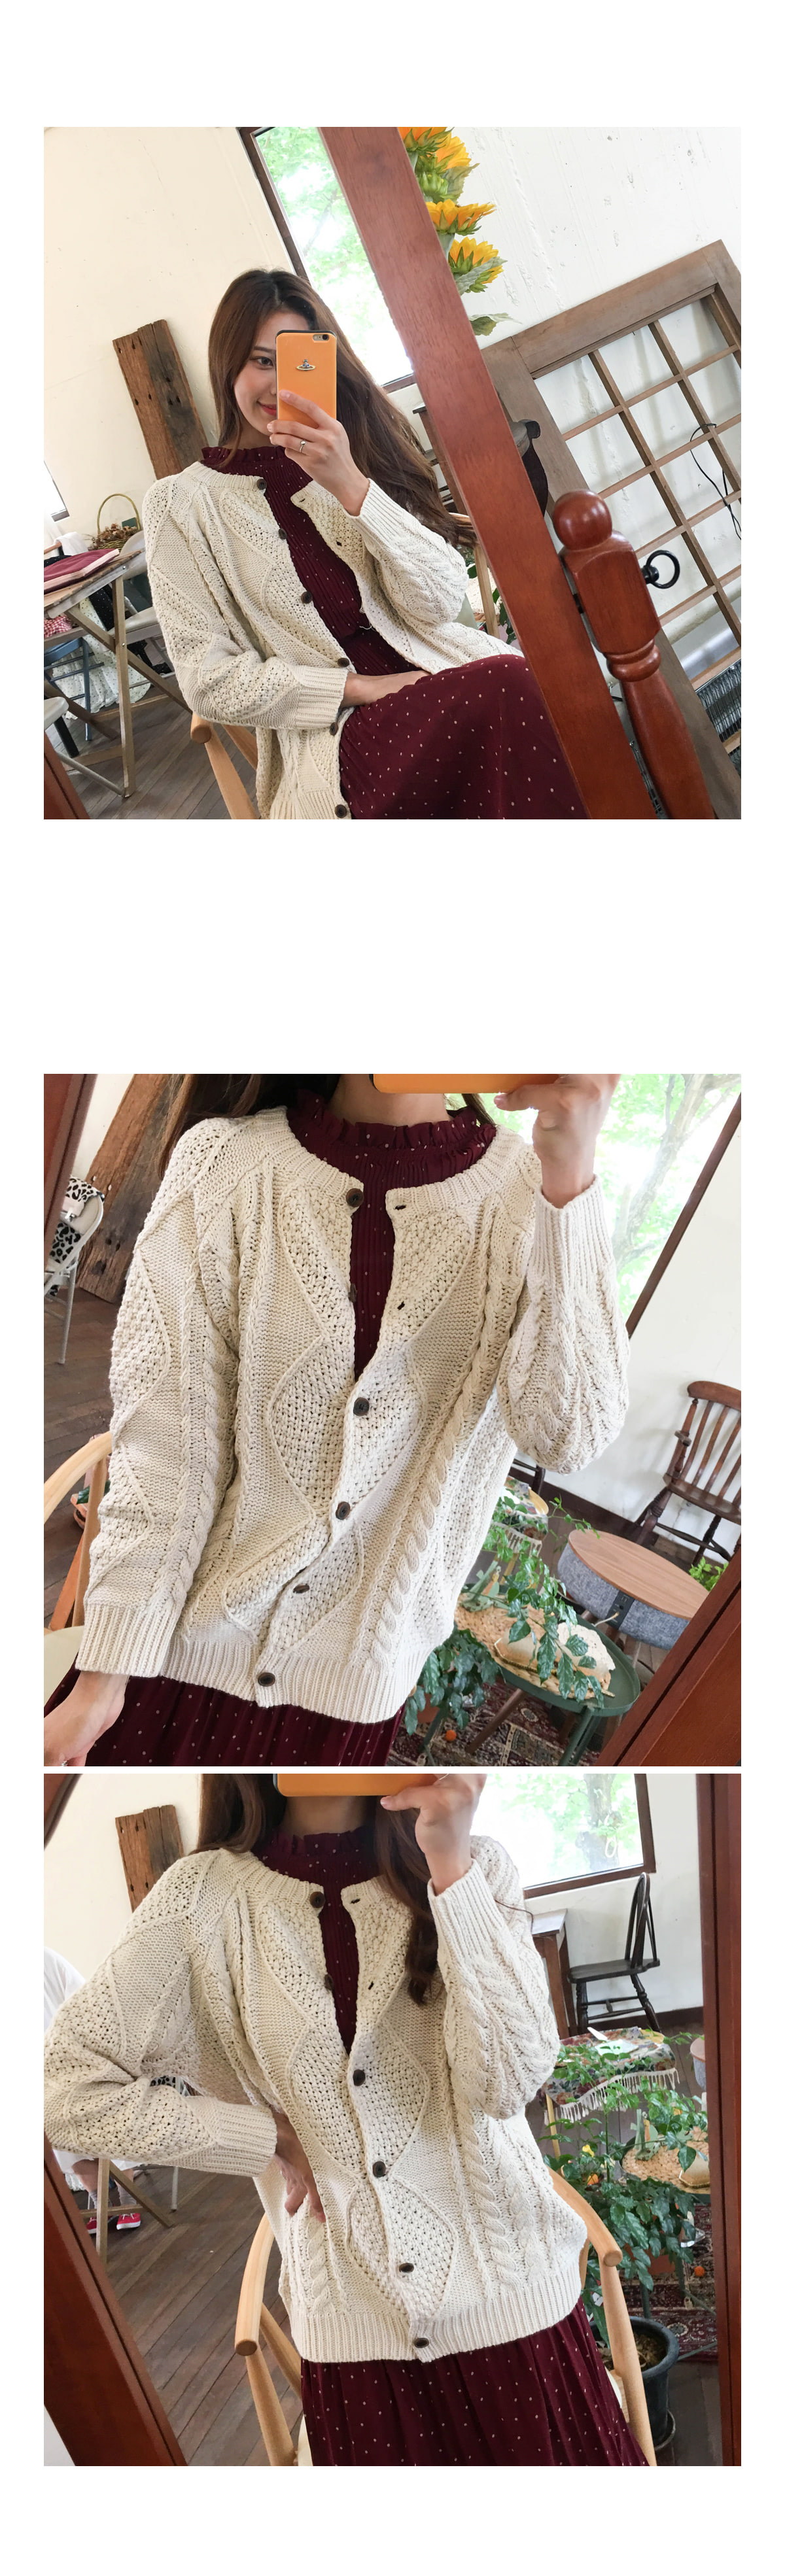 Twisted sunny knit cardigan